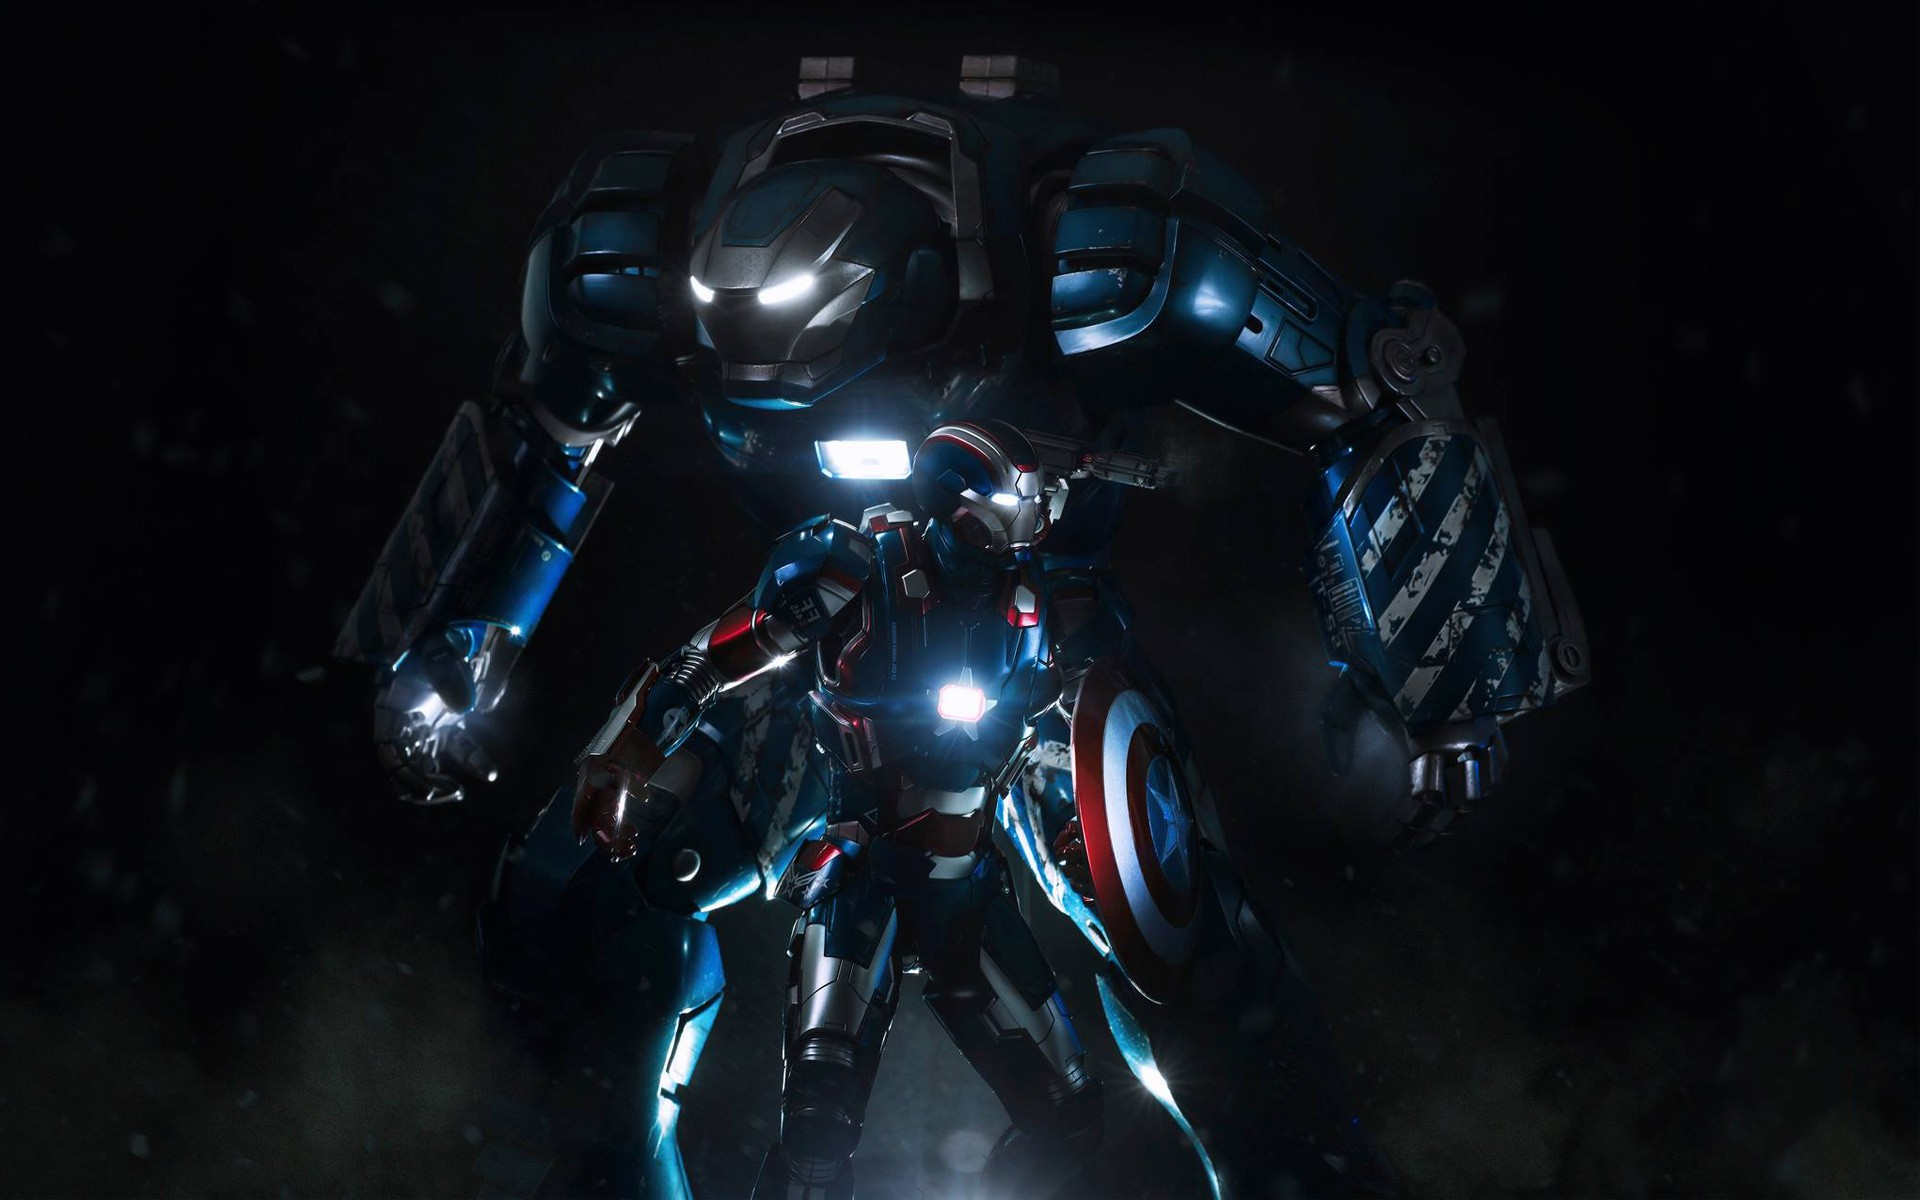 Cute Flowers Full Hd Wallpapers Iron Patriot Man Hd Movies 4k Wallpapers Images